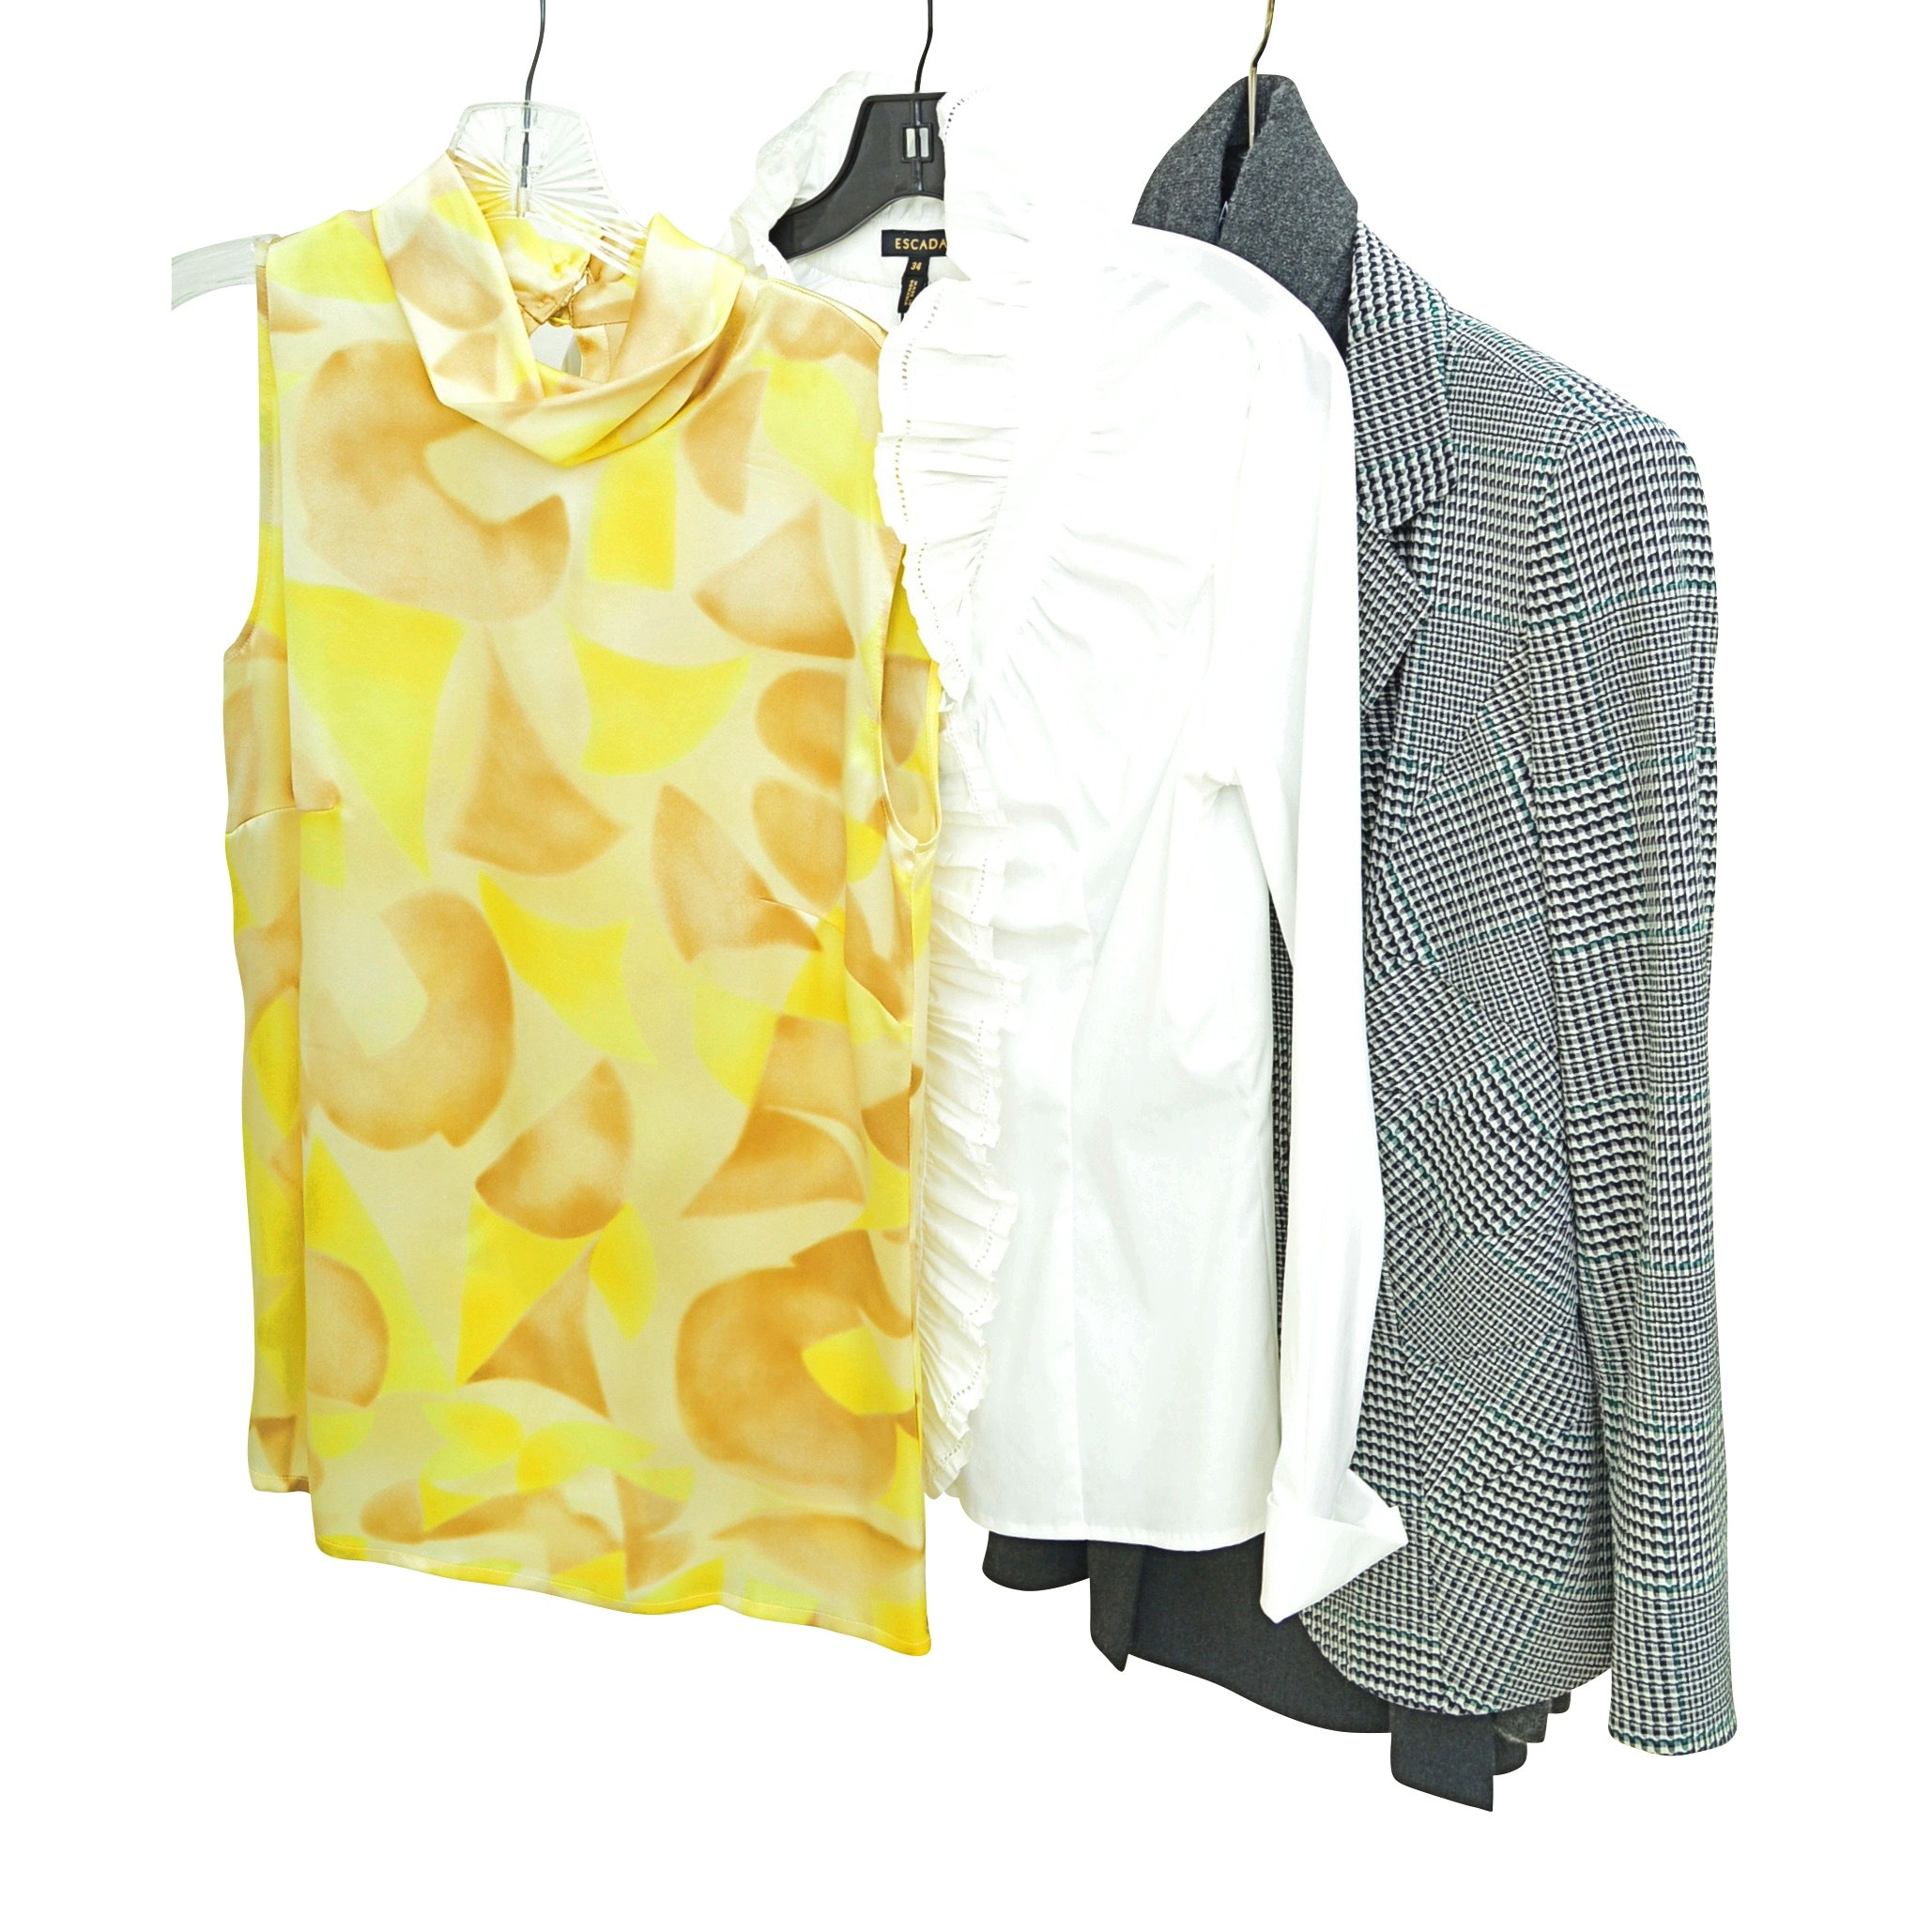 Women's Blouses, Cashmere Sweater and Wool Jacket with Escada, Saks